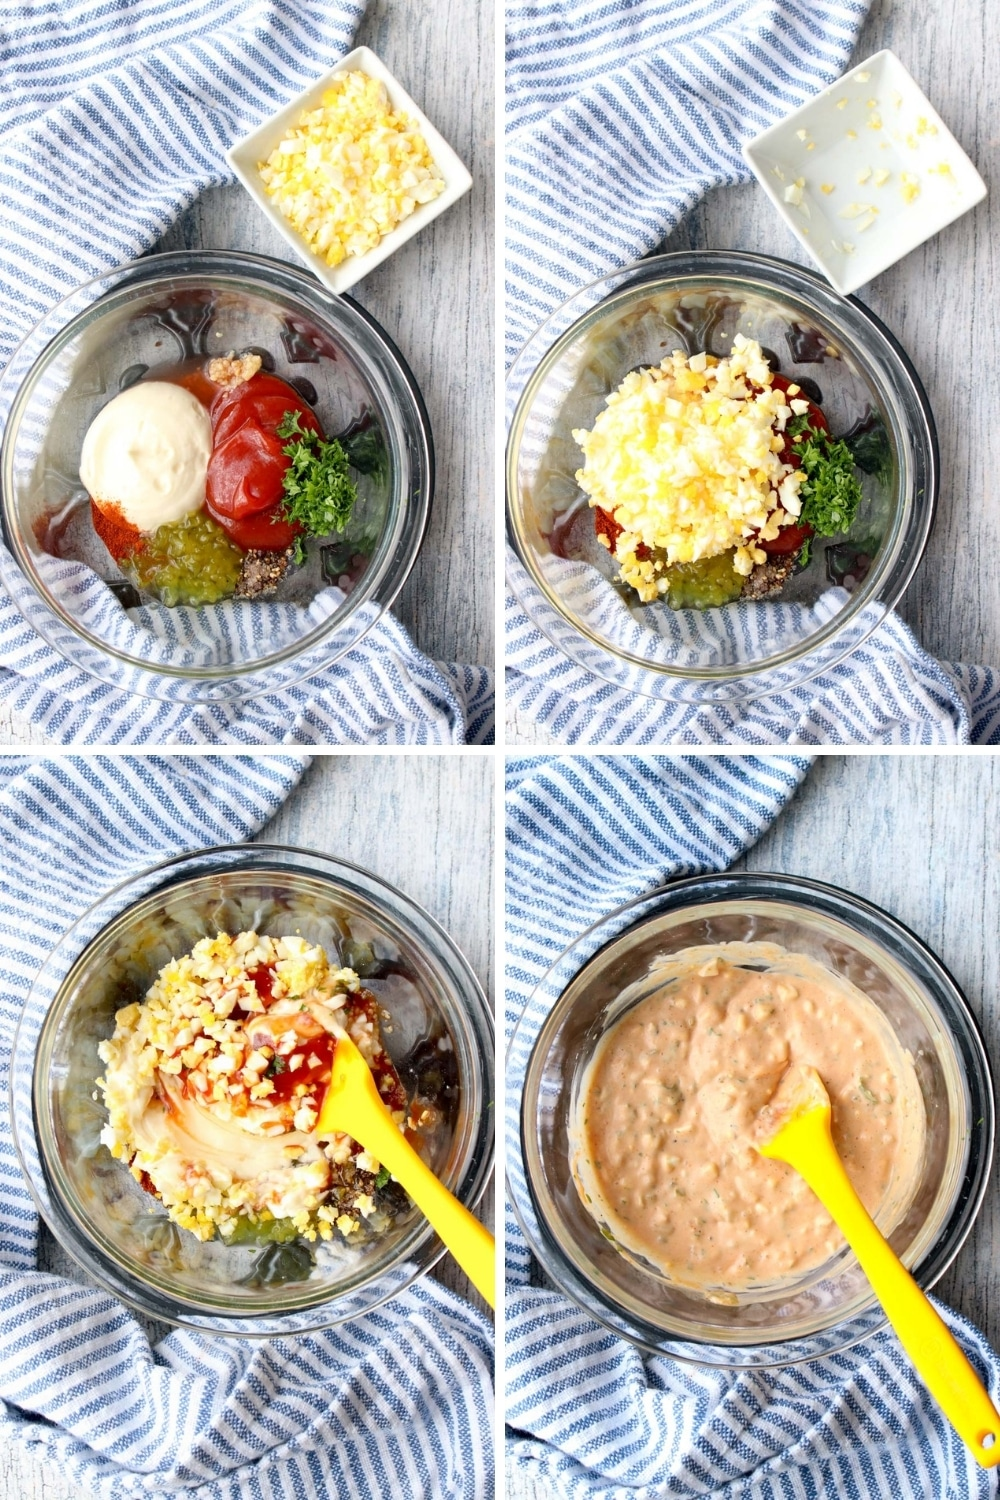 Steps showing how to make thousand island salad dressing